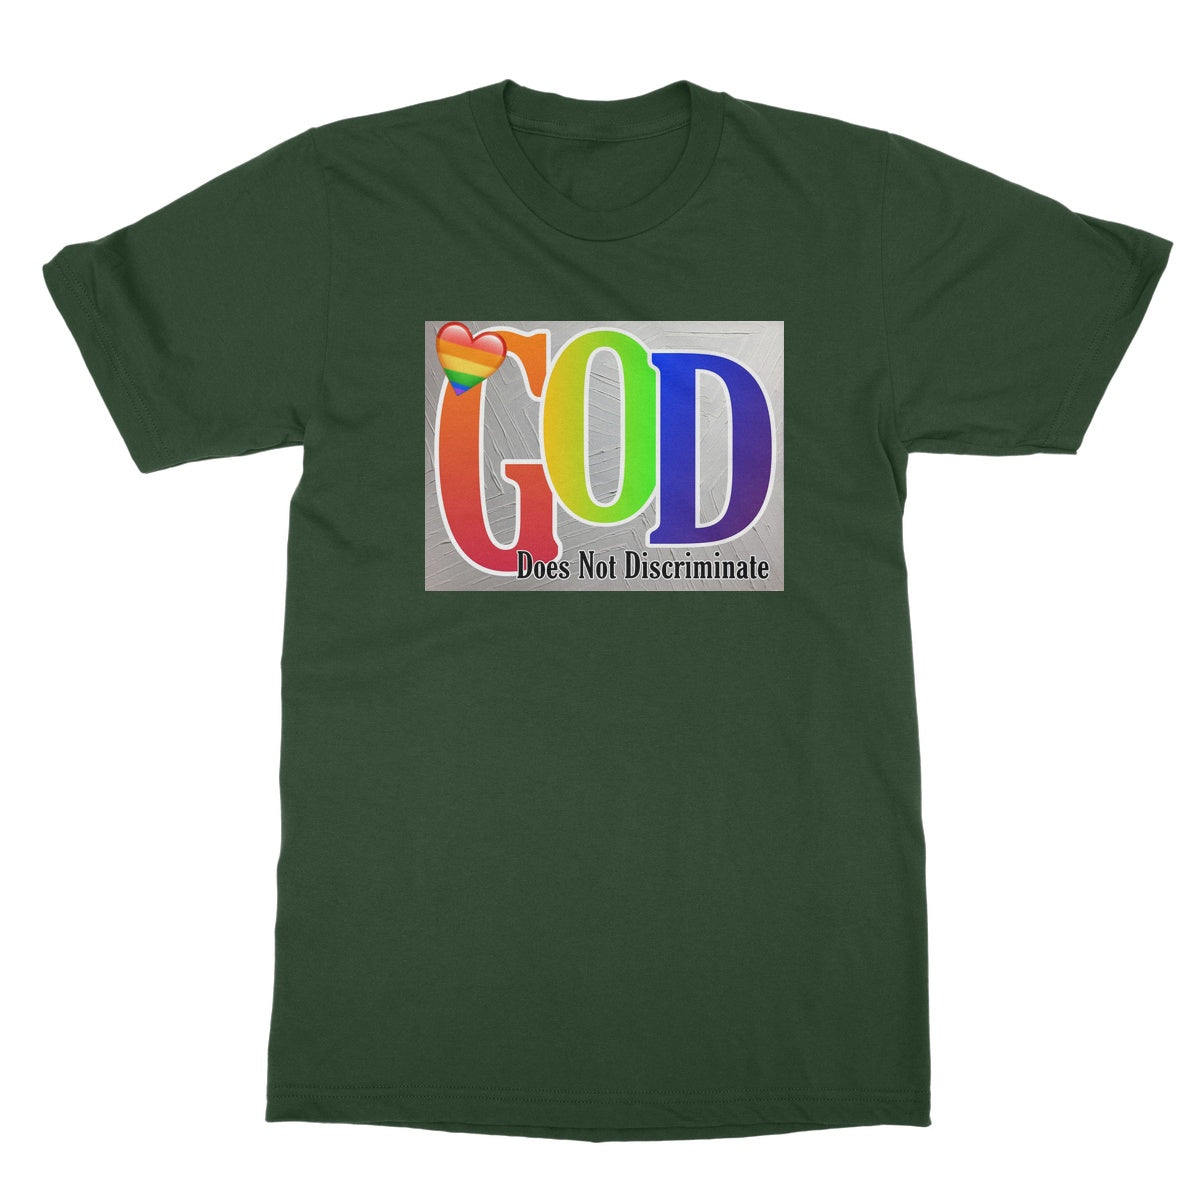 God Does Not Discriminate Softstyle T-Shirt